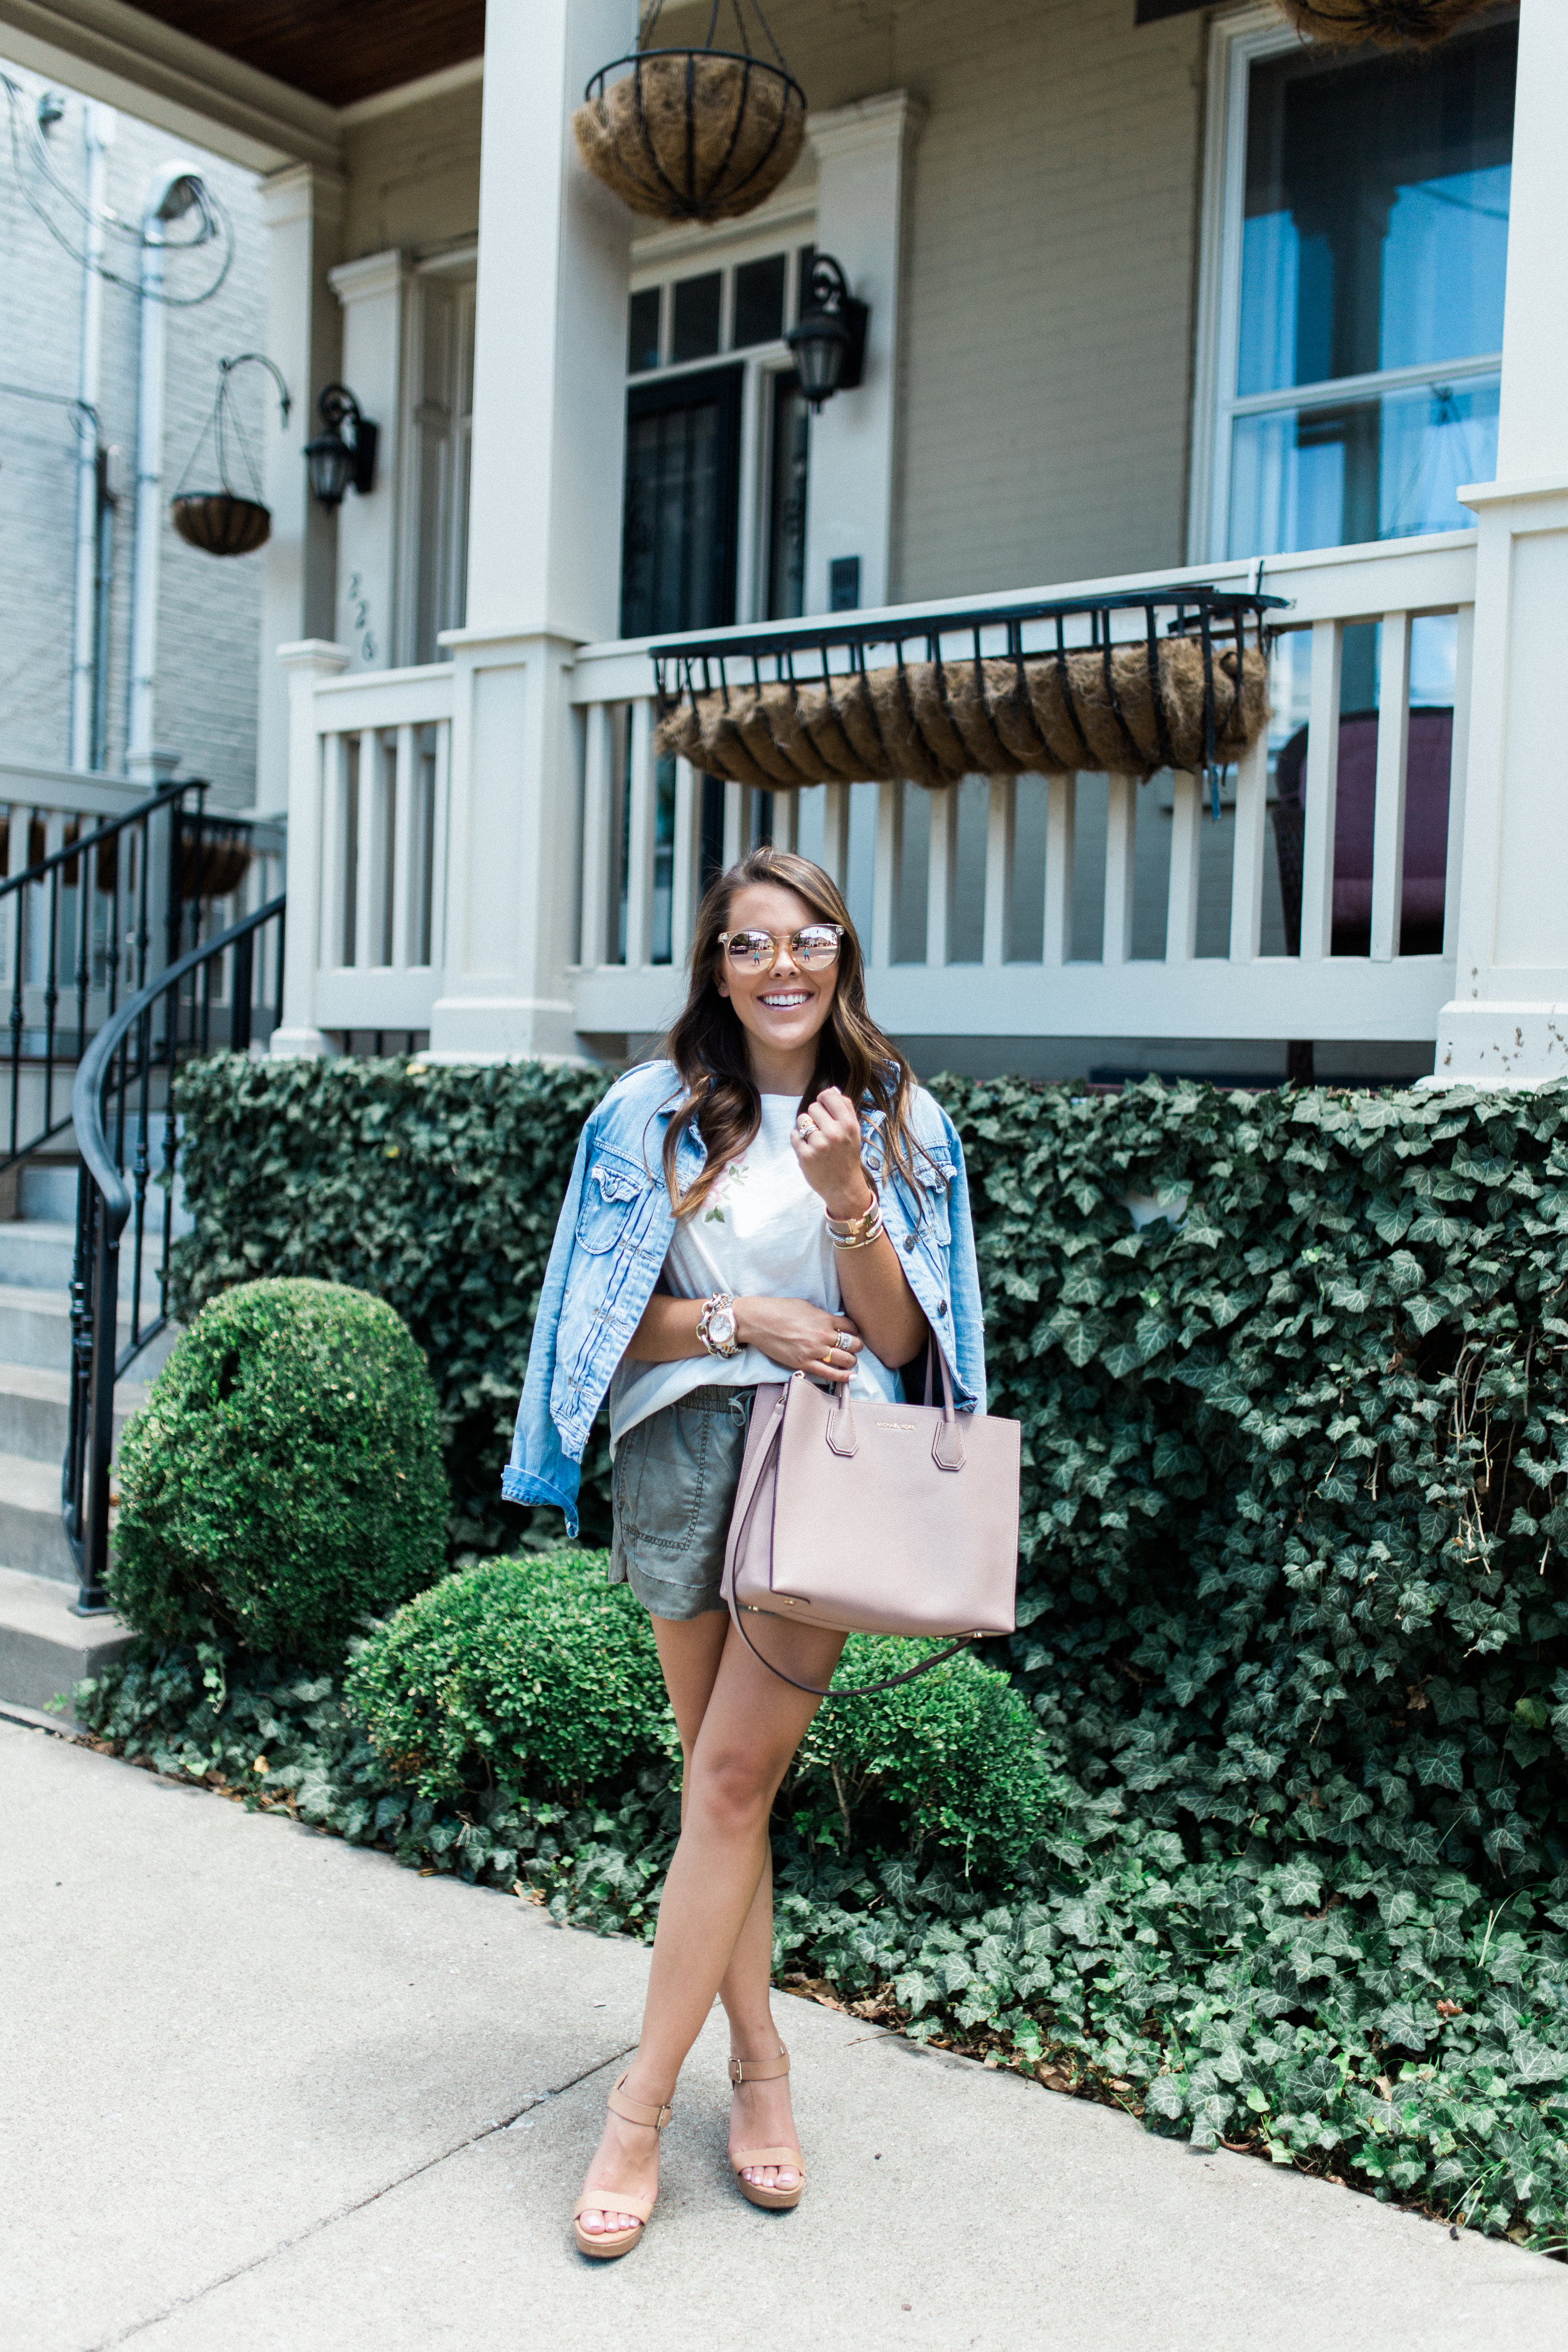 Embroidered Tshirt via Glitter & Gingham / Summer Style / How to style a jean jacket / Anthropologie / Express / J.Crew